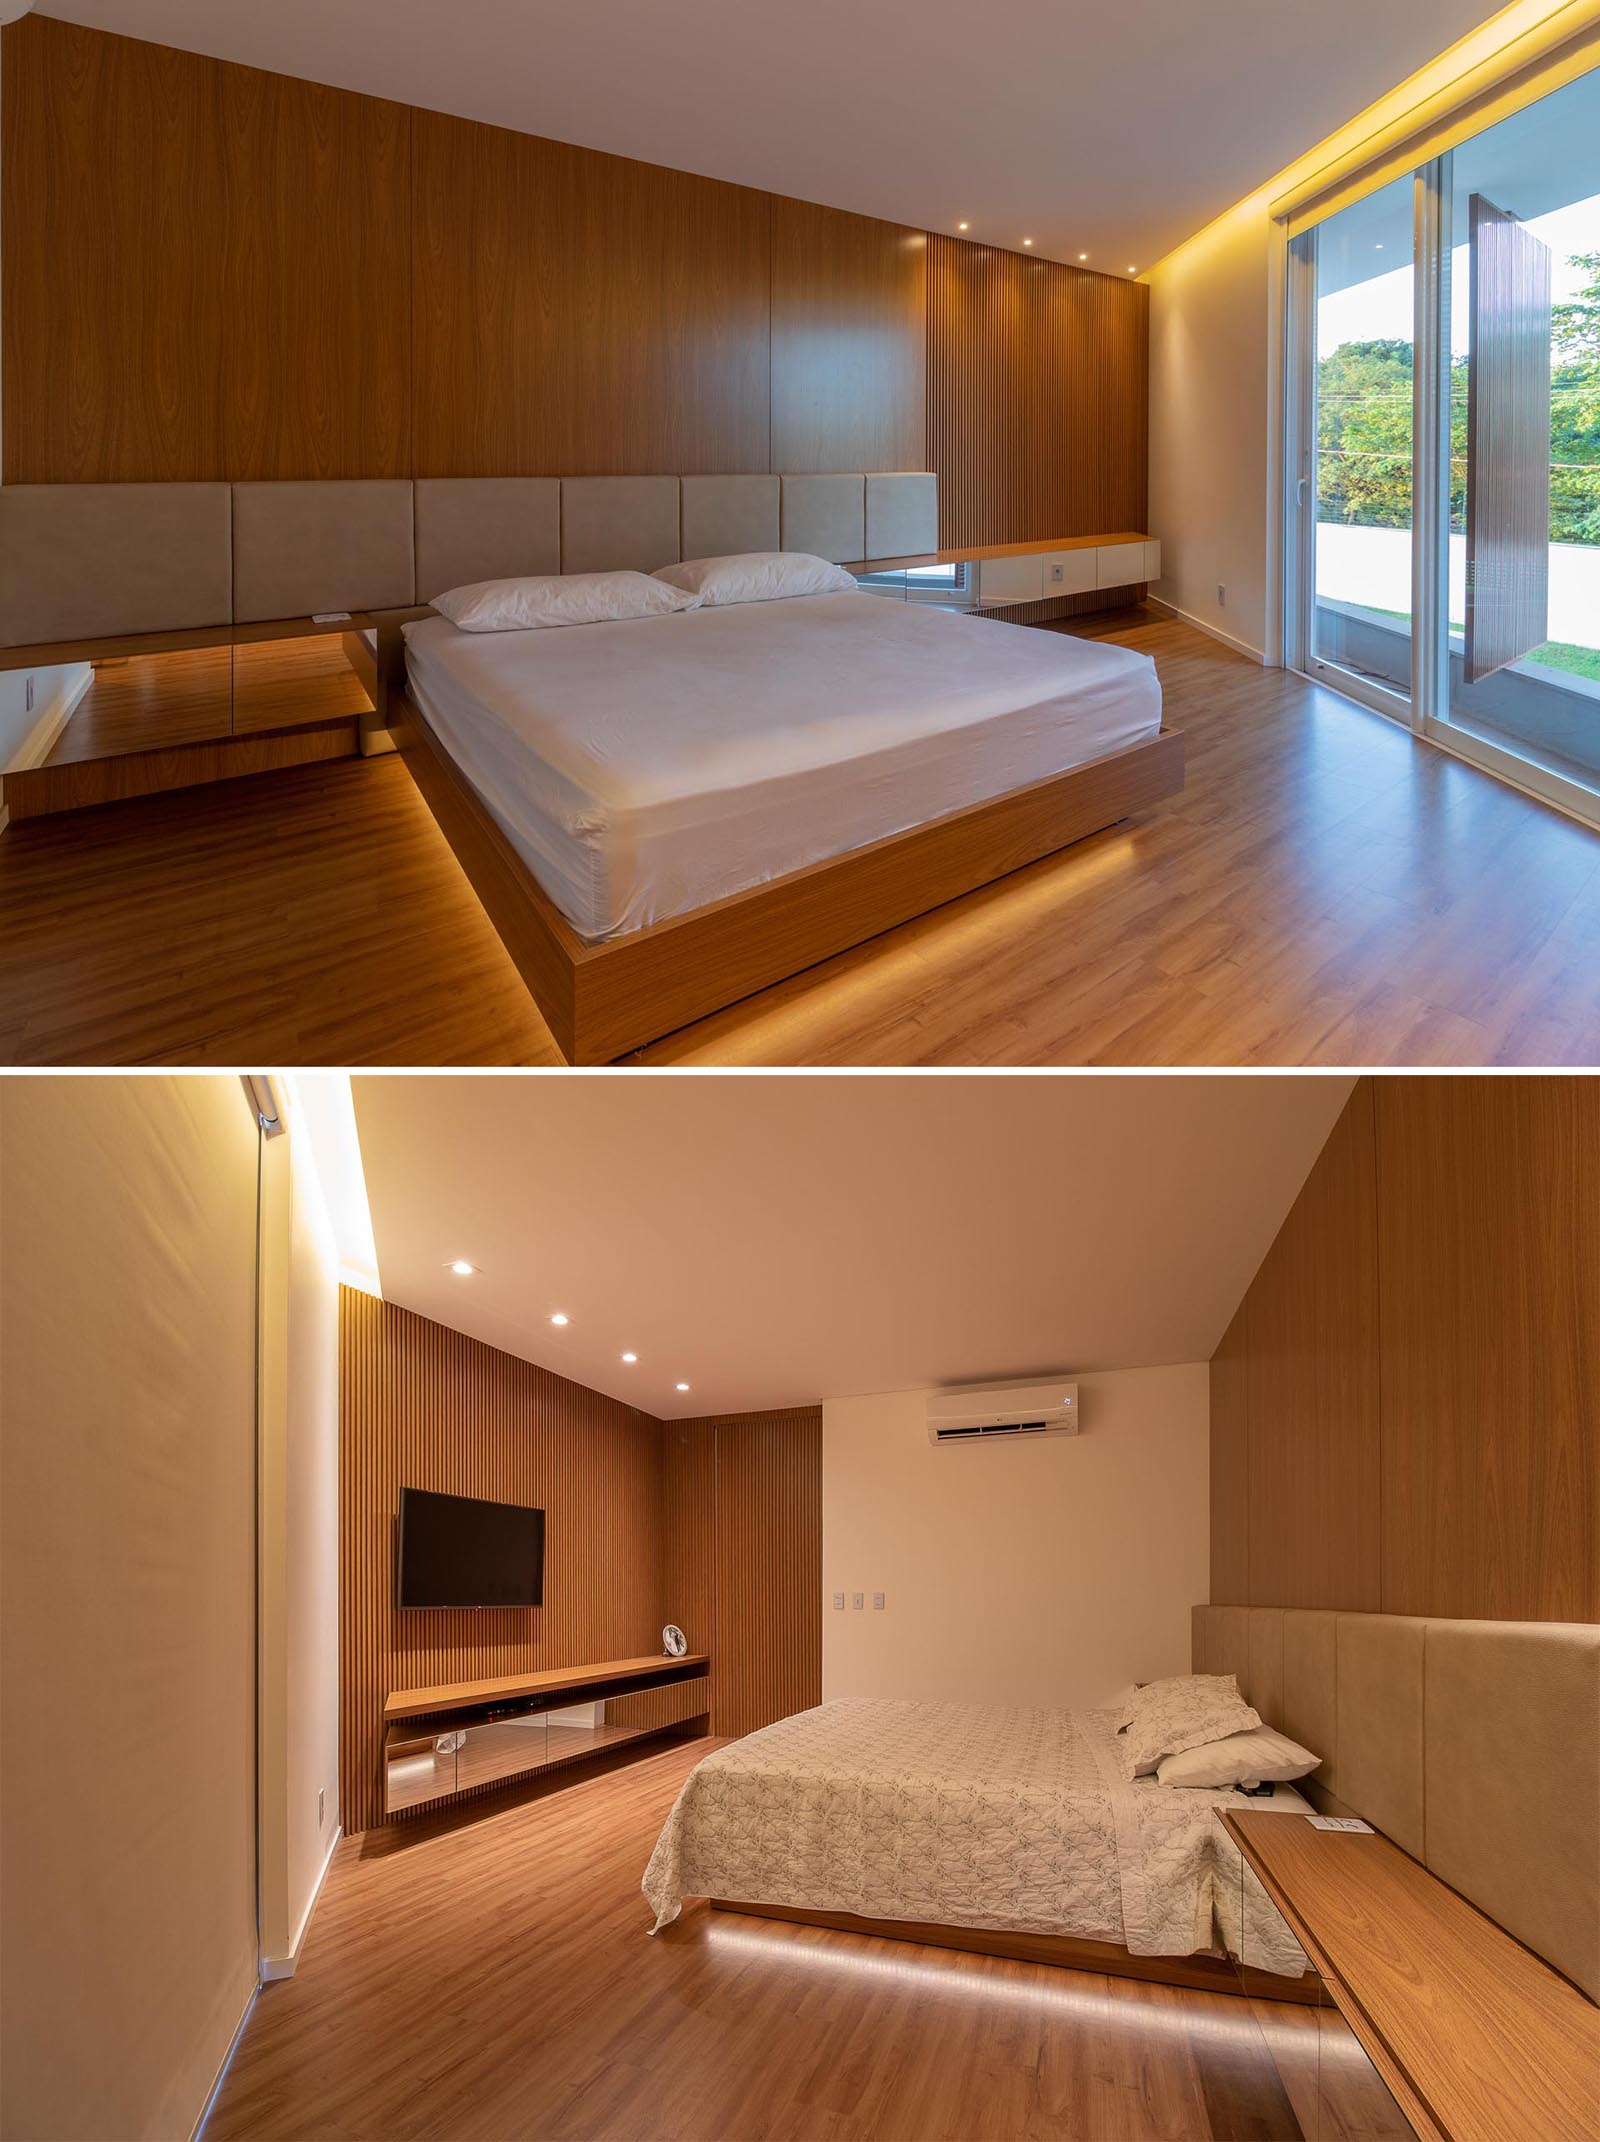 In this modern bedroom, hidden lighting is featured under the bed and along the one edge of the ceiling.